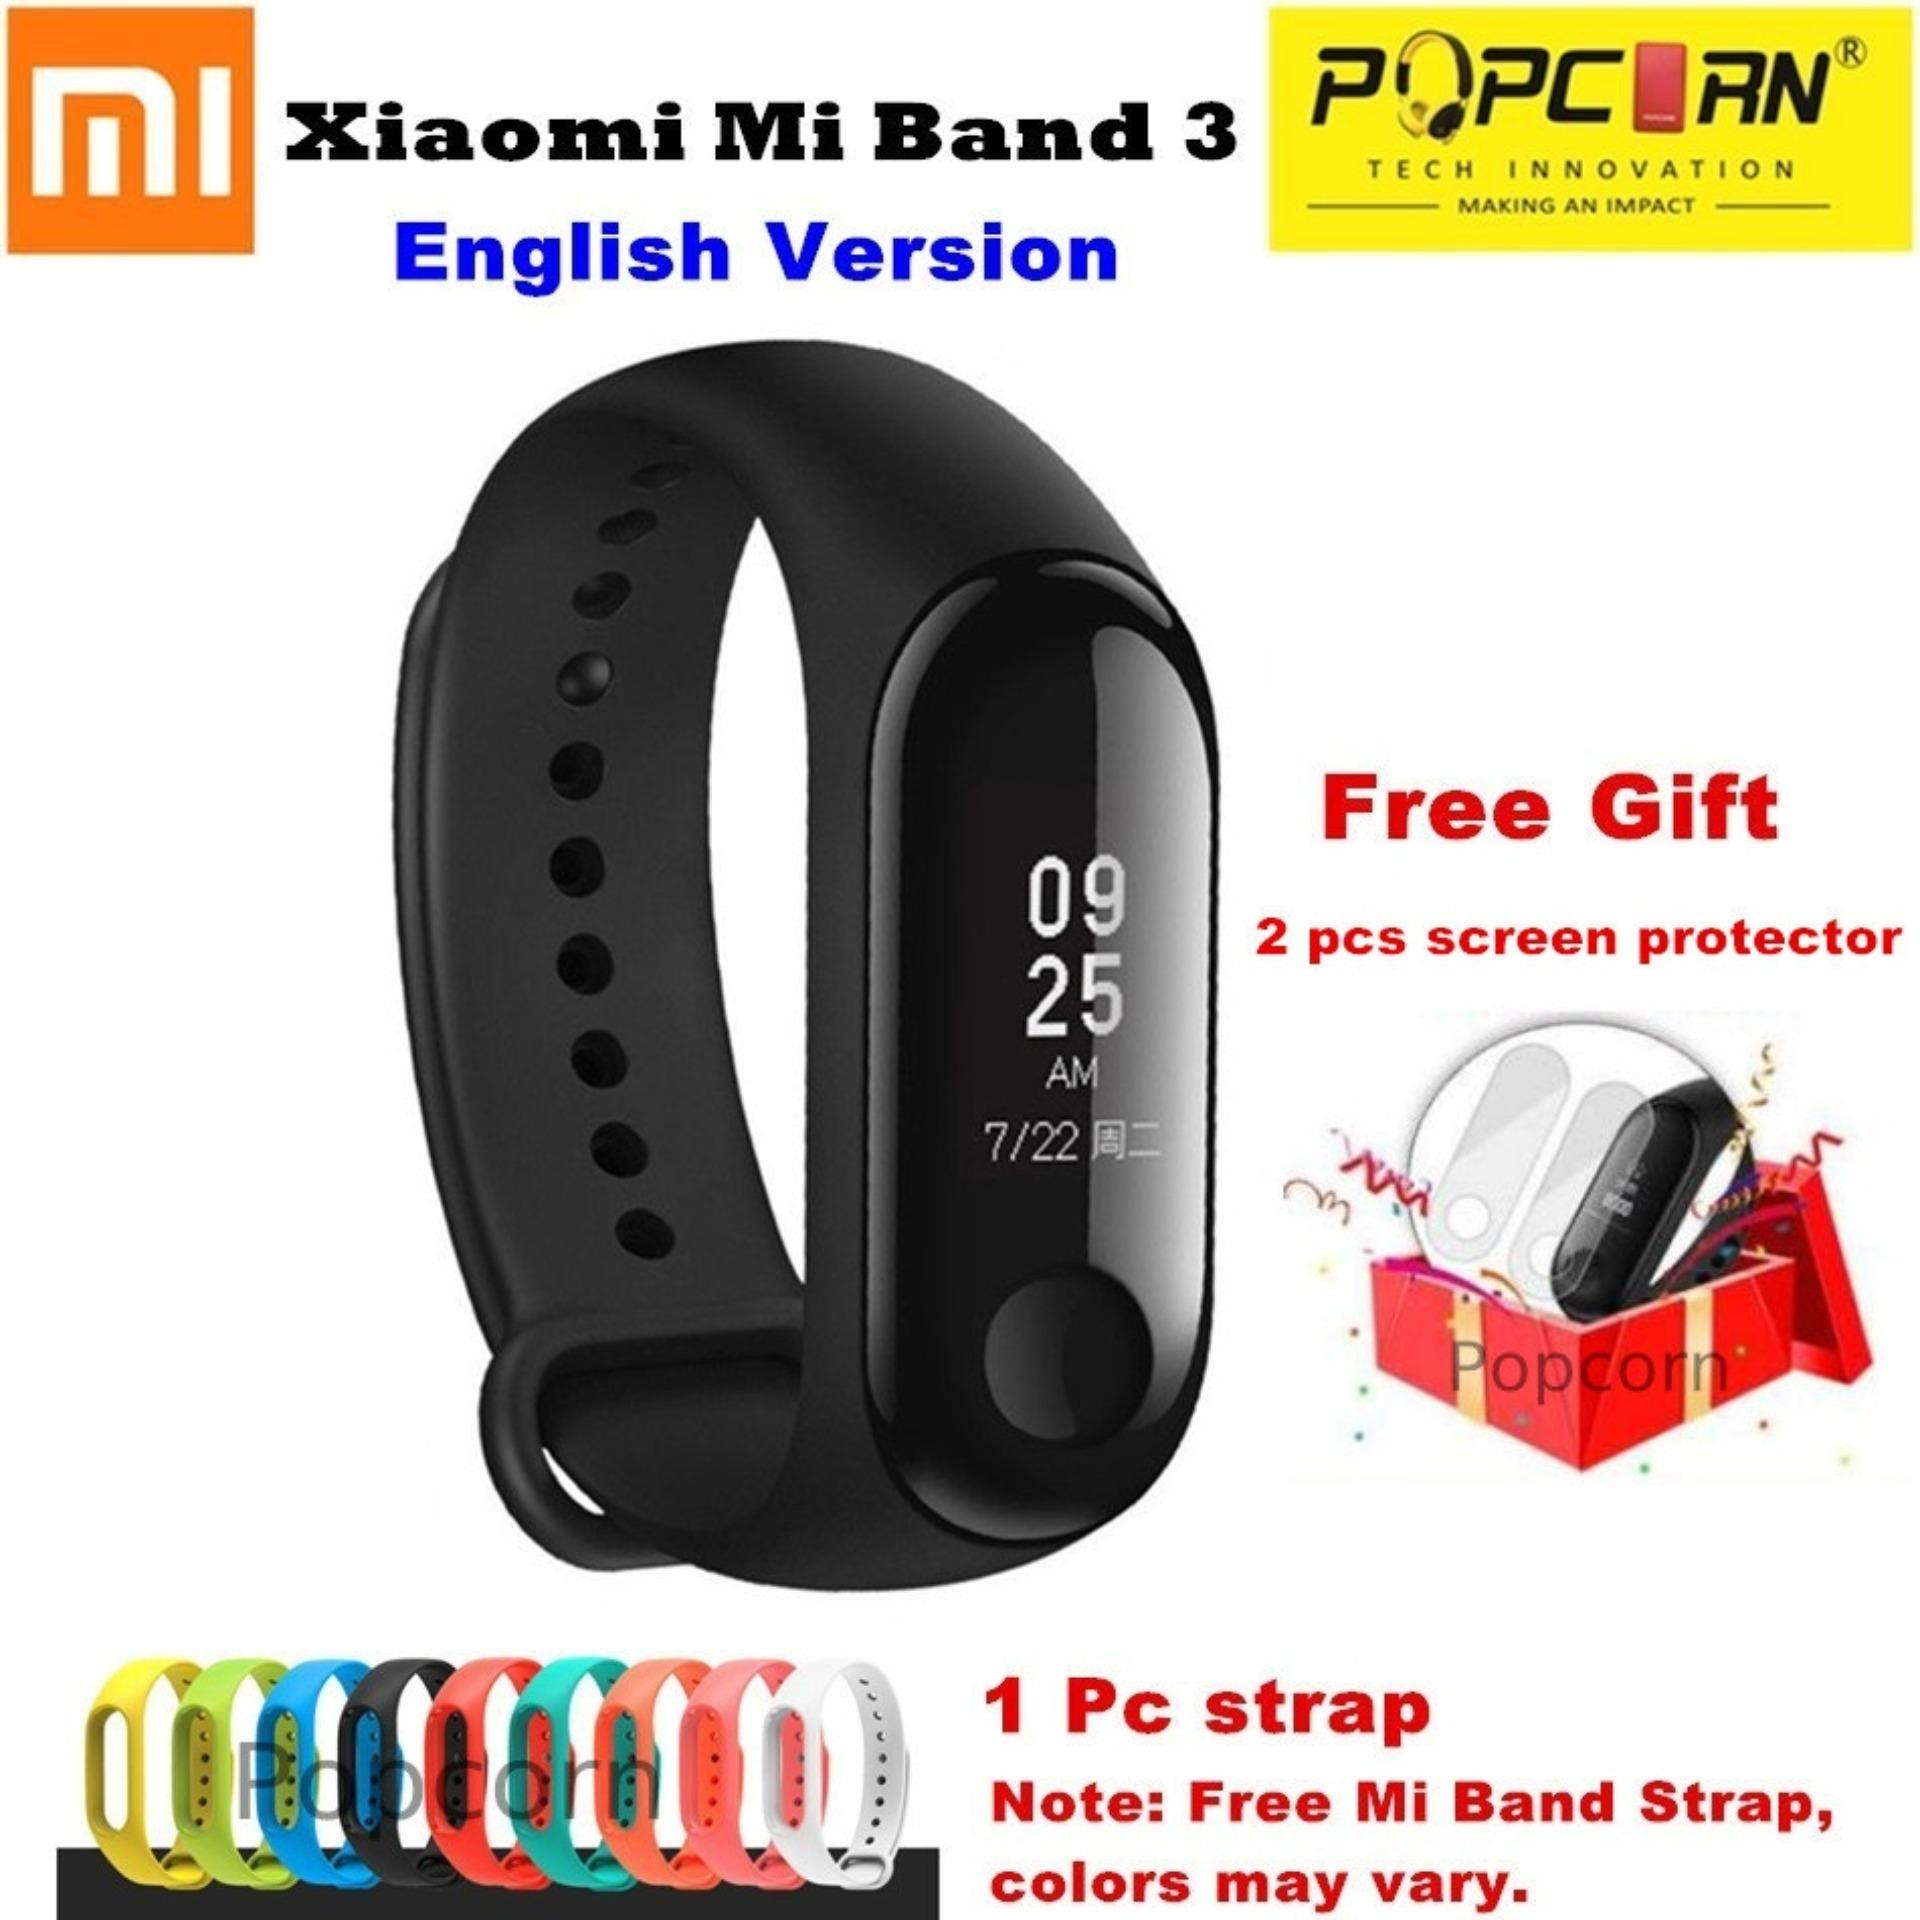 Xiaomi Philippines Xiaomi price list Cellphone Speaker & Phone Accessories for sale